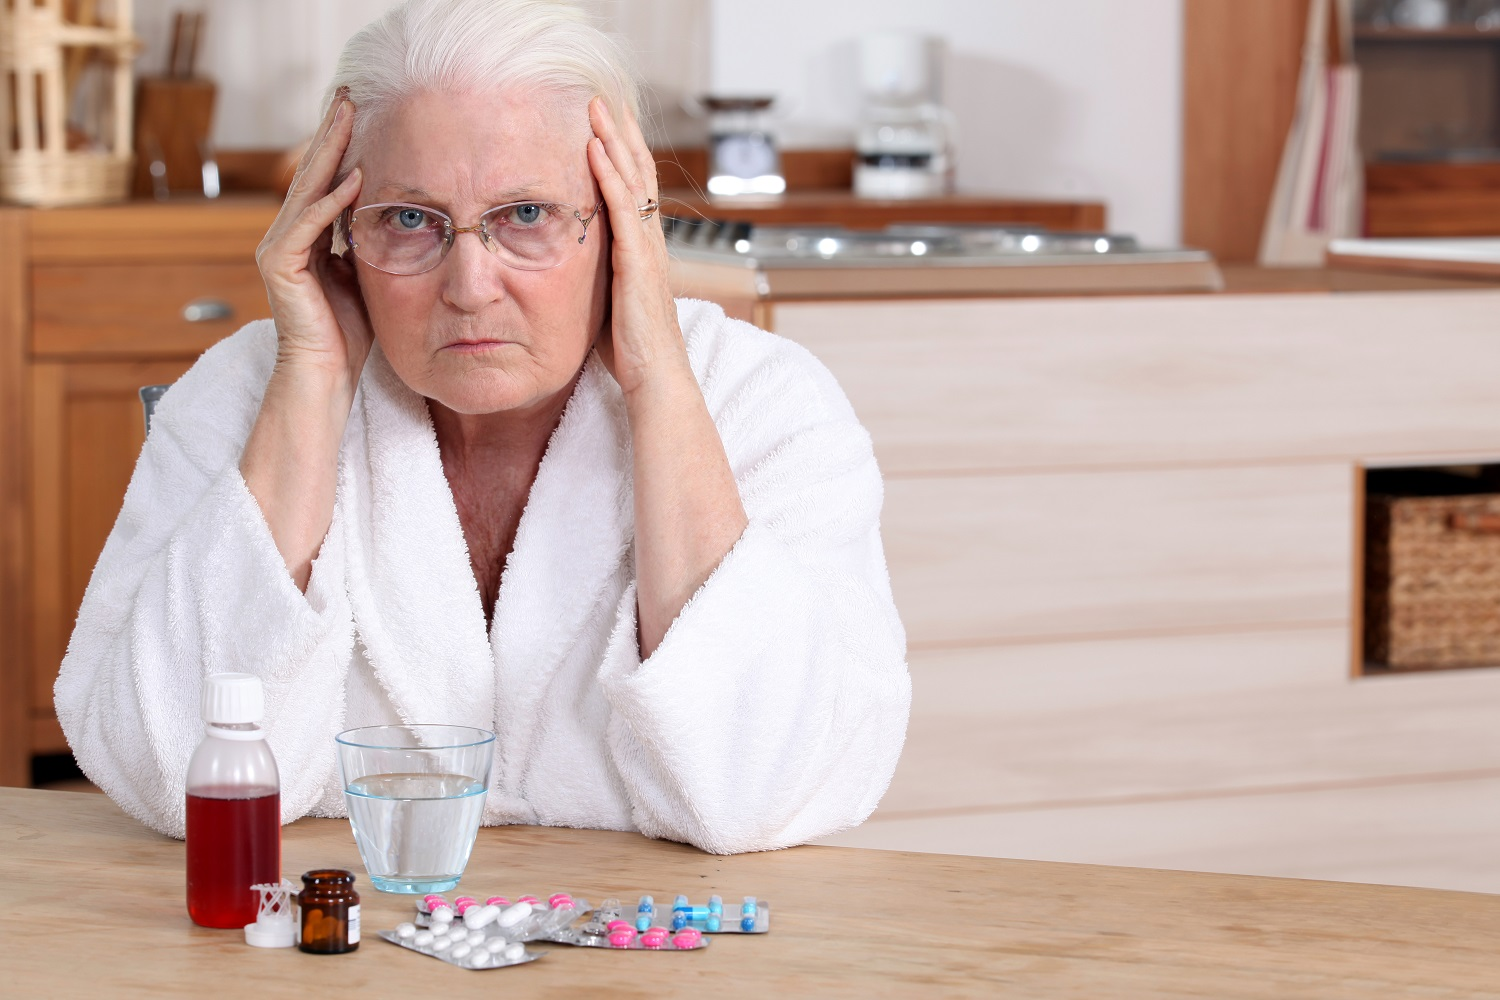 Medication errors can lead to elder abuse